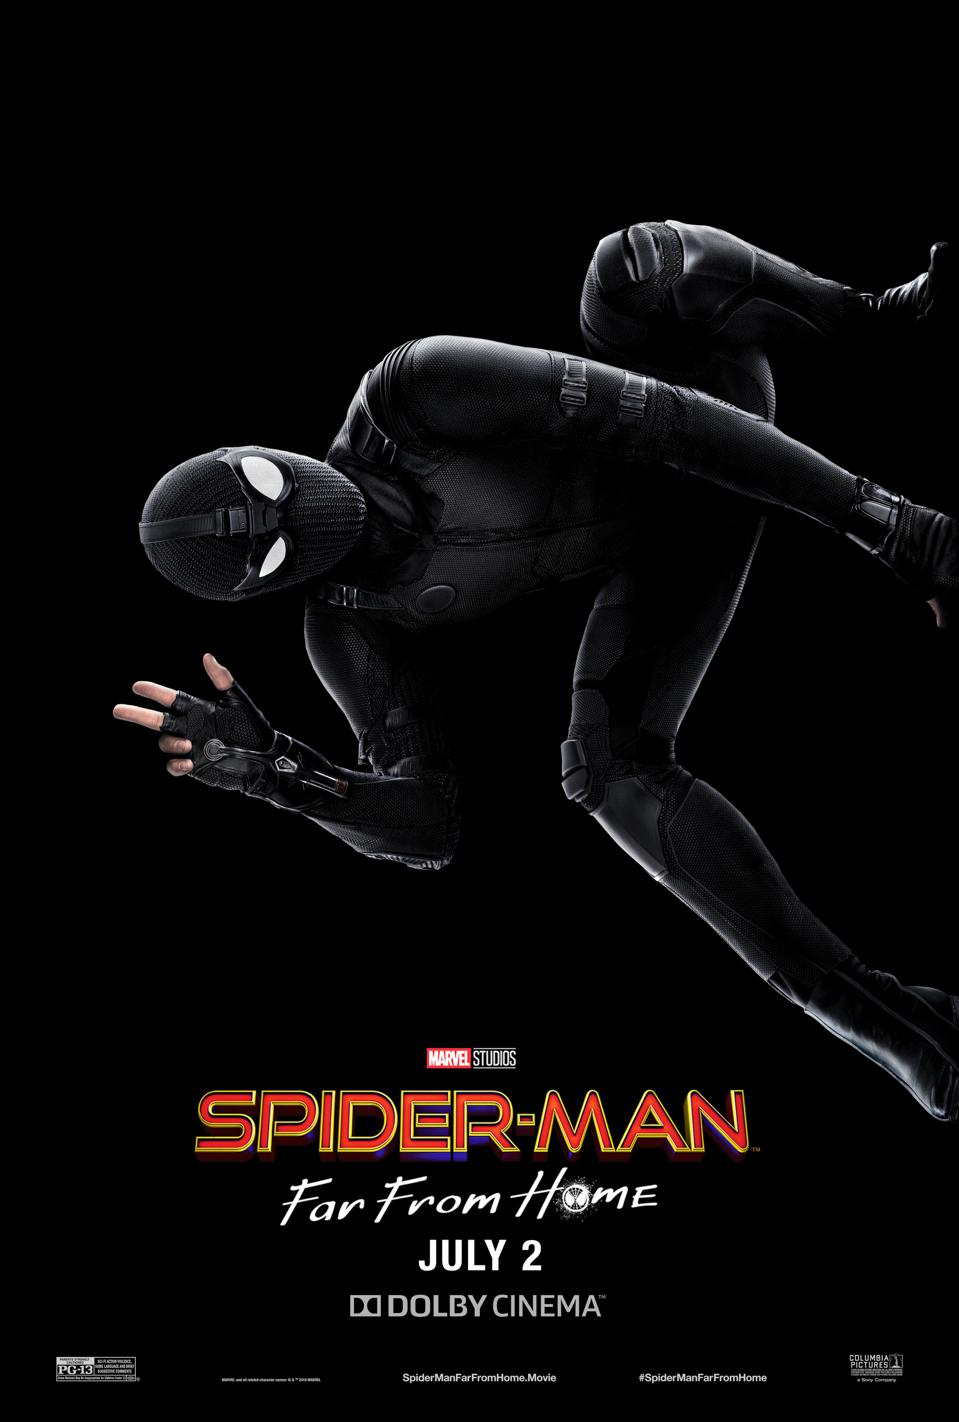 Official Dolby Cinema poster for Marvel's ″Spider-Man: Far From Home″